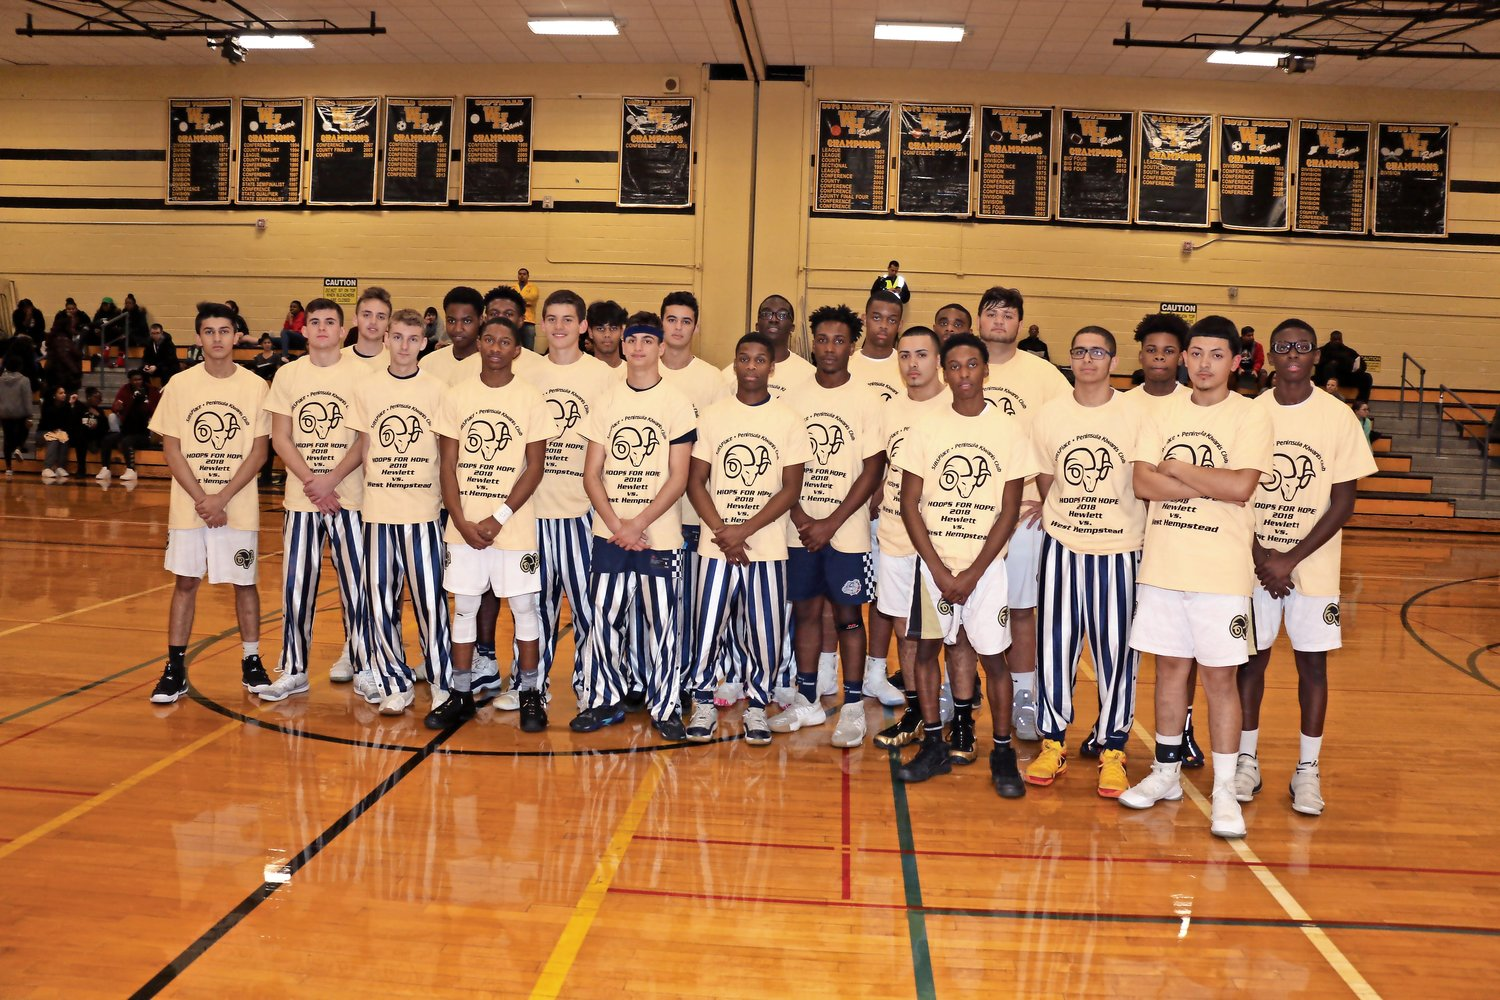 The West Hempstead Rams boys' basketball program raised $800 last year for SIBSPlace.